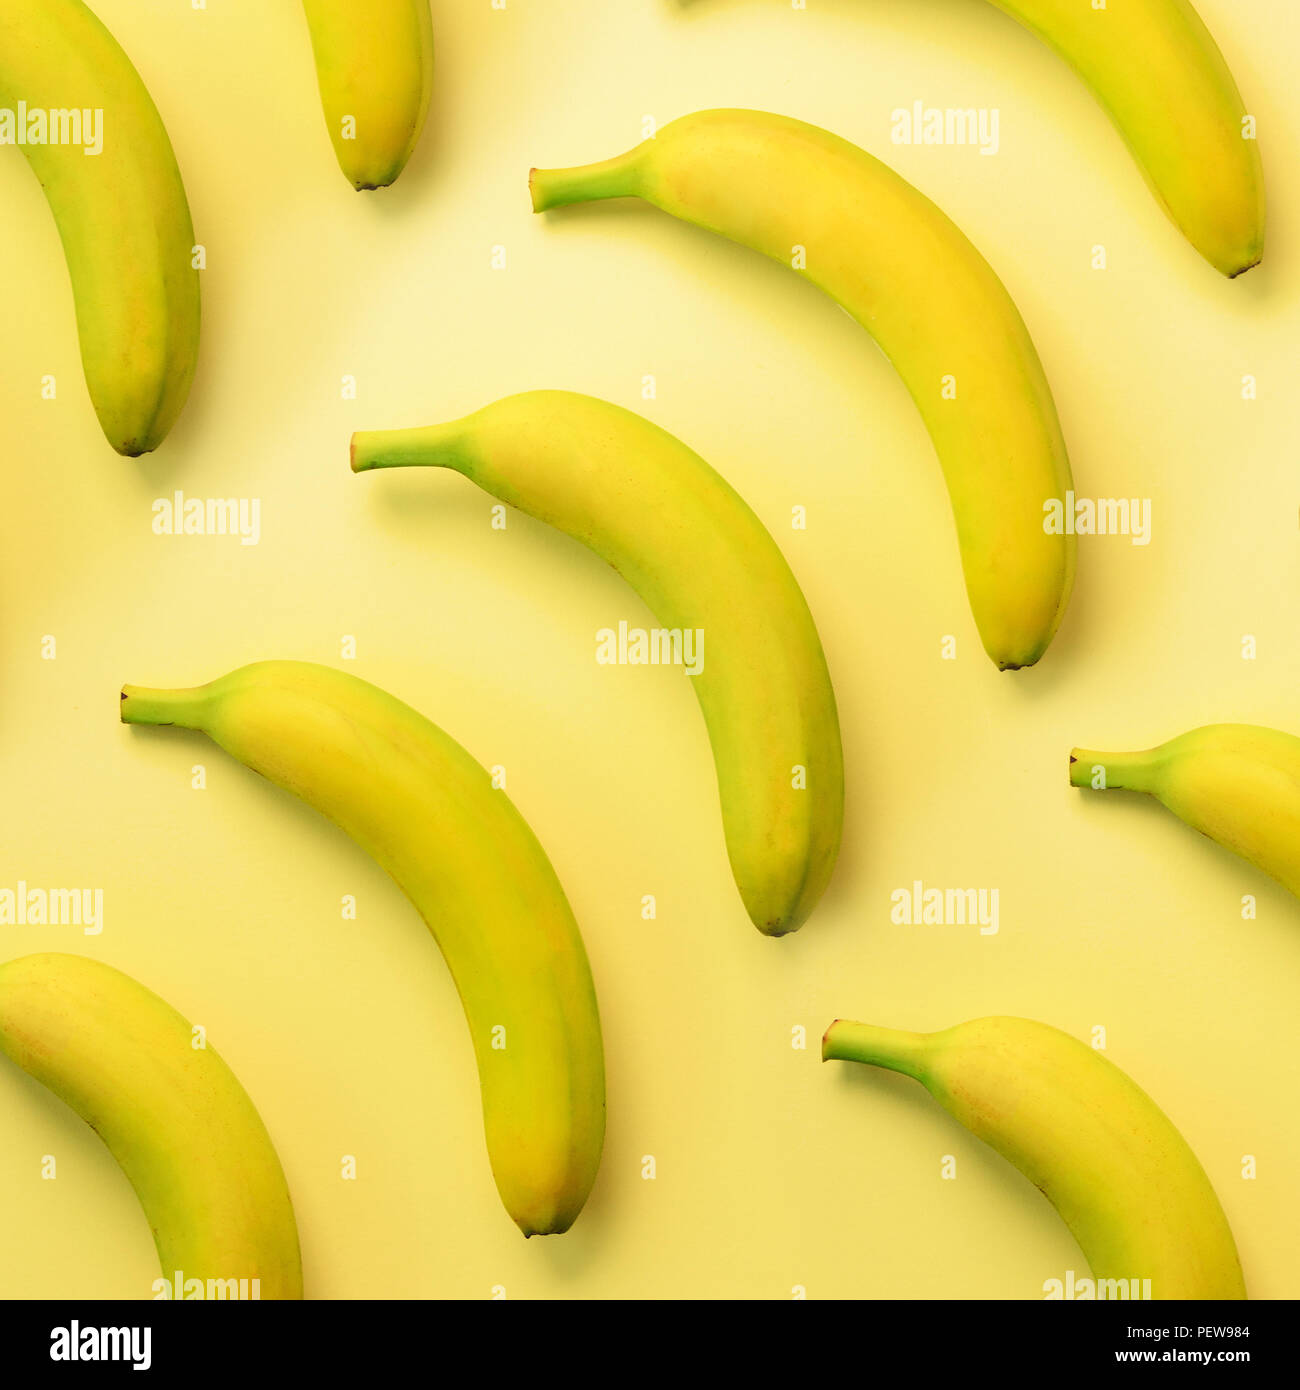 Colorful fruit pattern. Bananas over yellow background. Square crop. Top view. Pop art design, creative summer concept. Minimal flat lay style - Stock Image